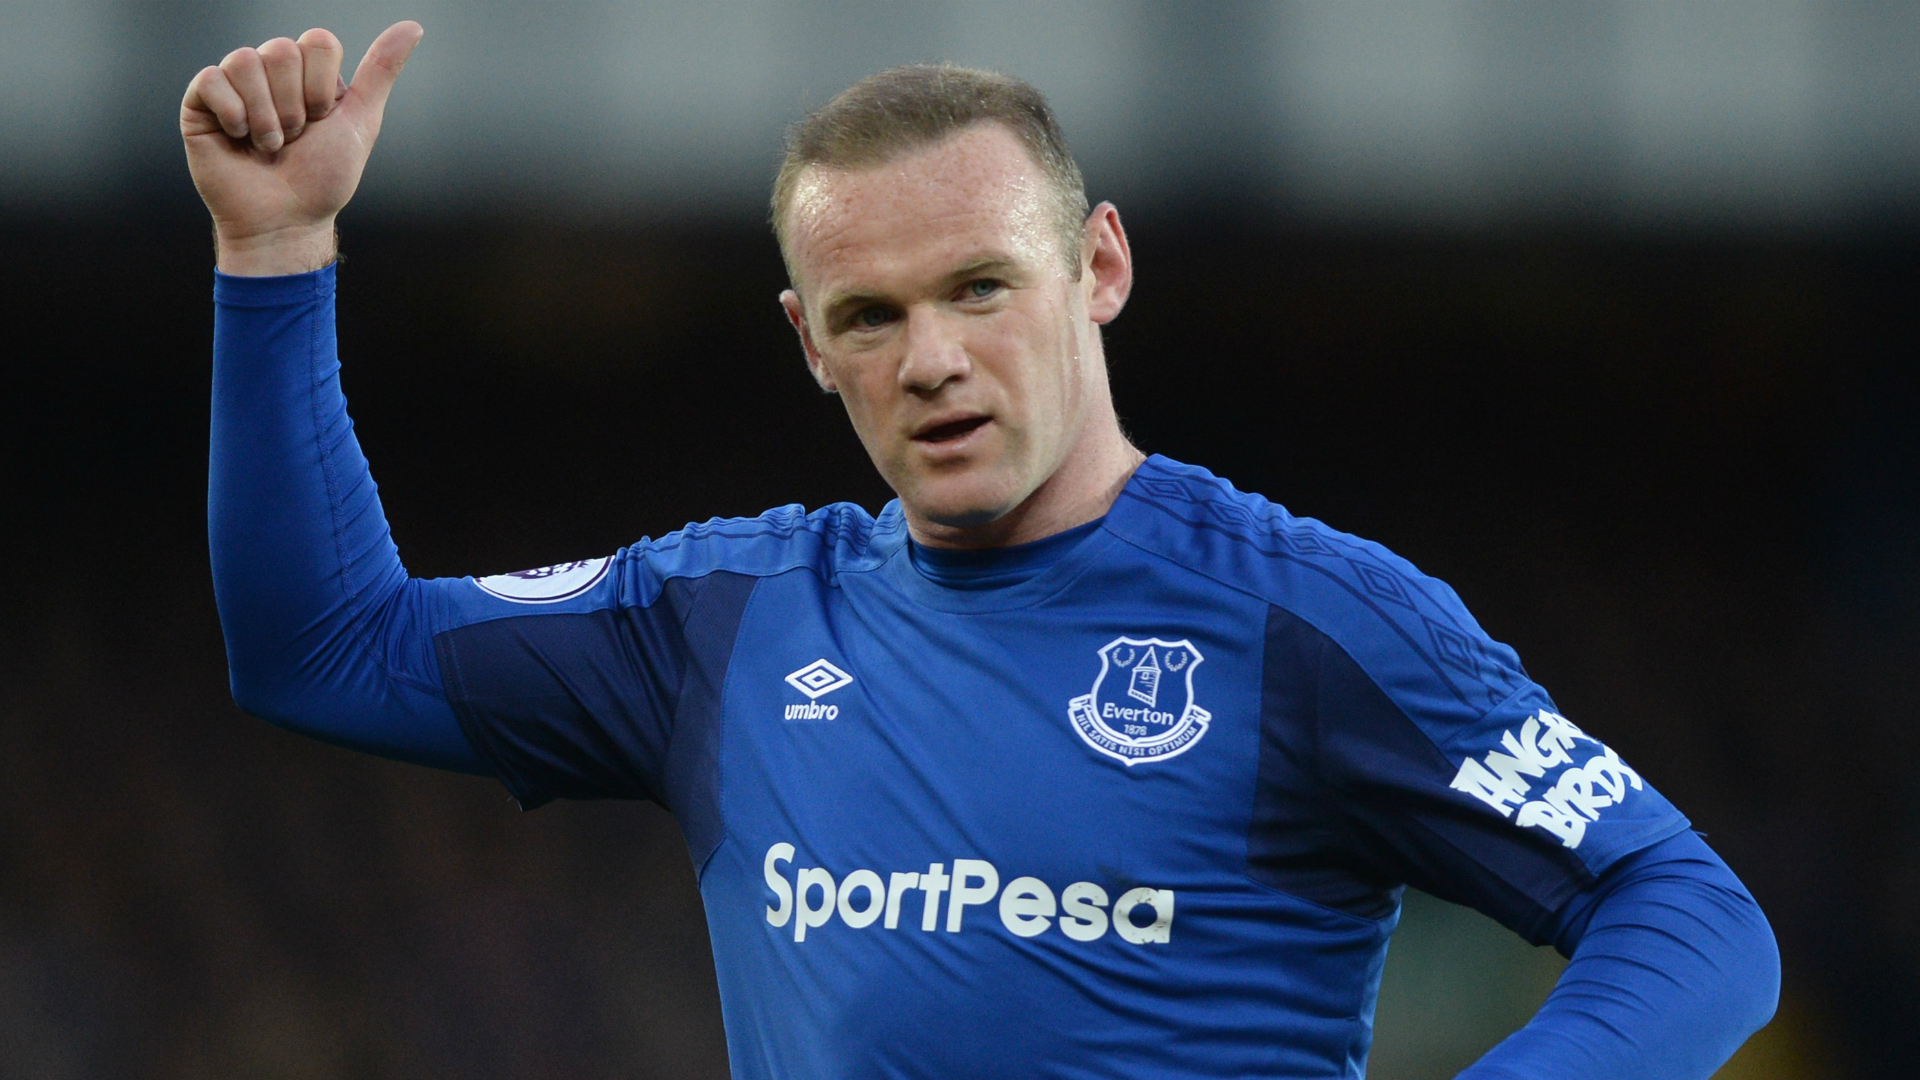 Wayne Rooney set to leave Everton, heading to US